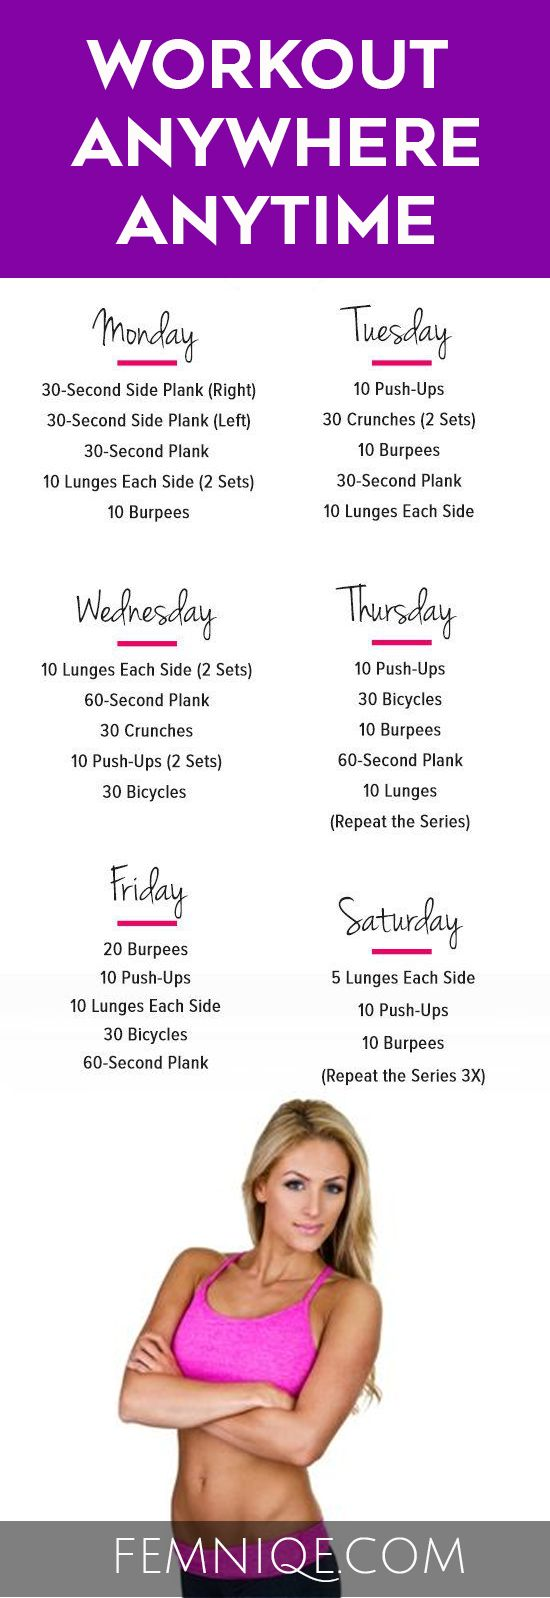 How To Lose 10 Pounds In A Week (a Simple 7 Day Plan